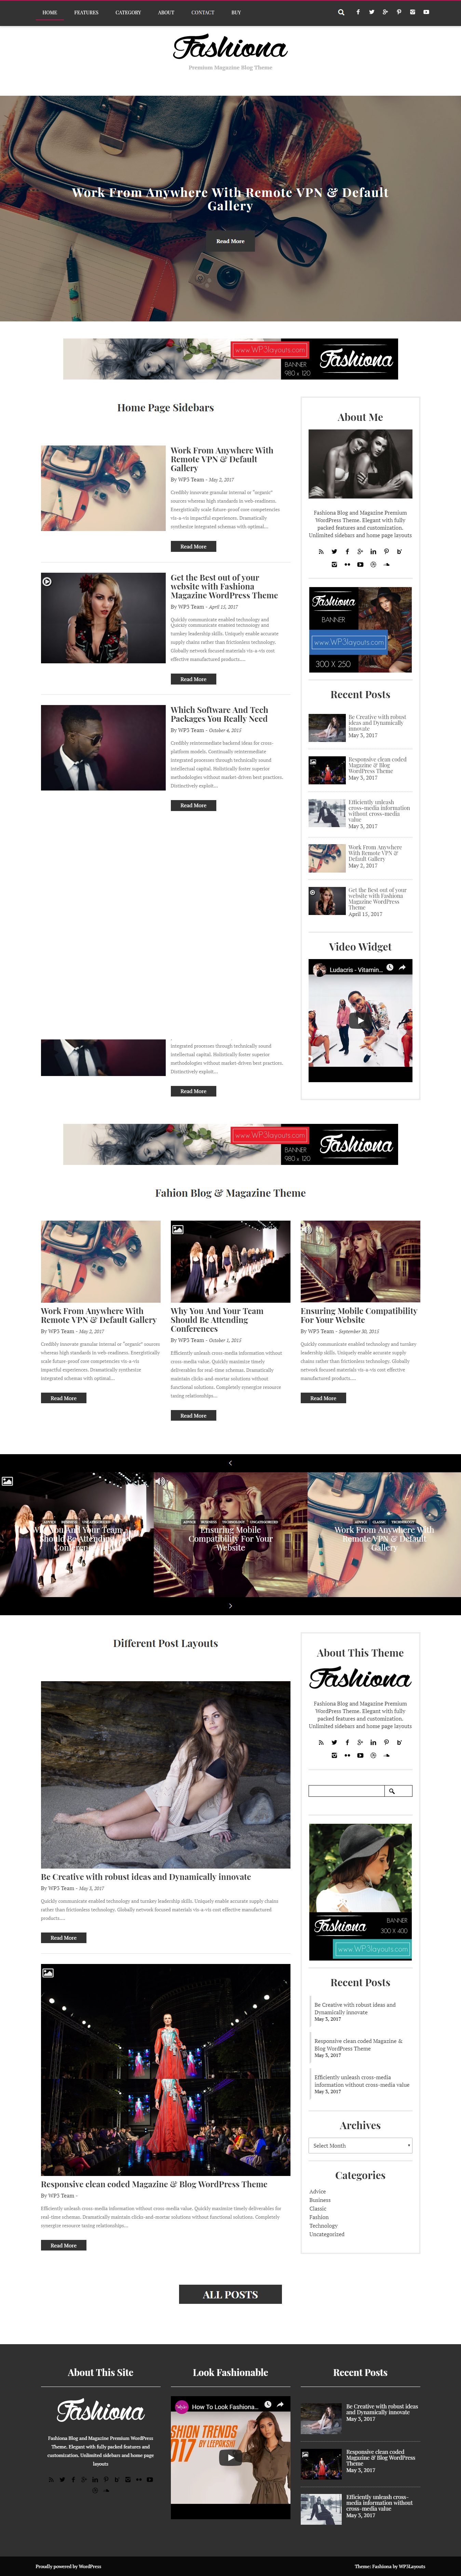 Fashiona - Best Free Fashion WordPress Theme